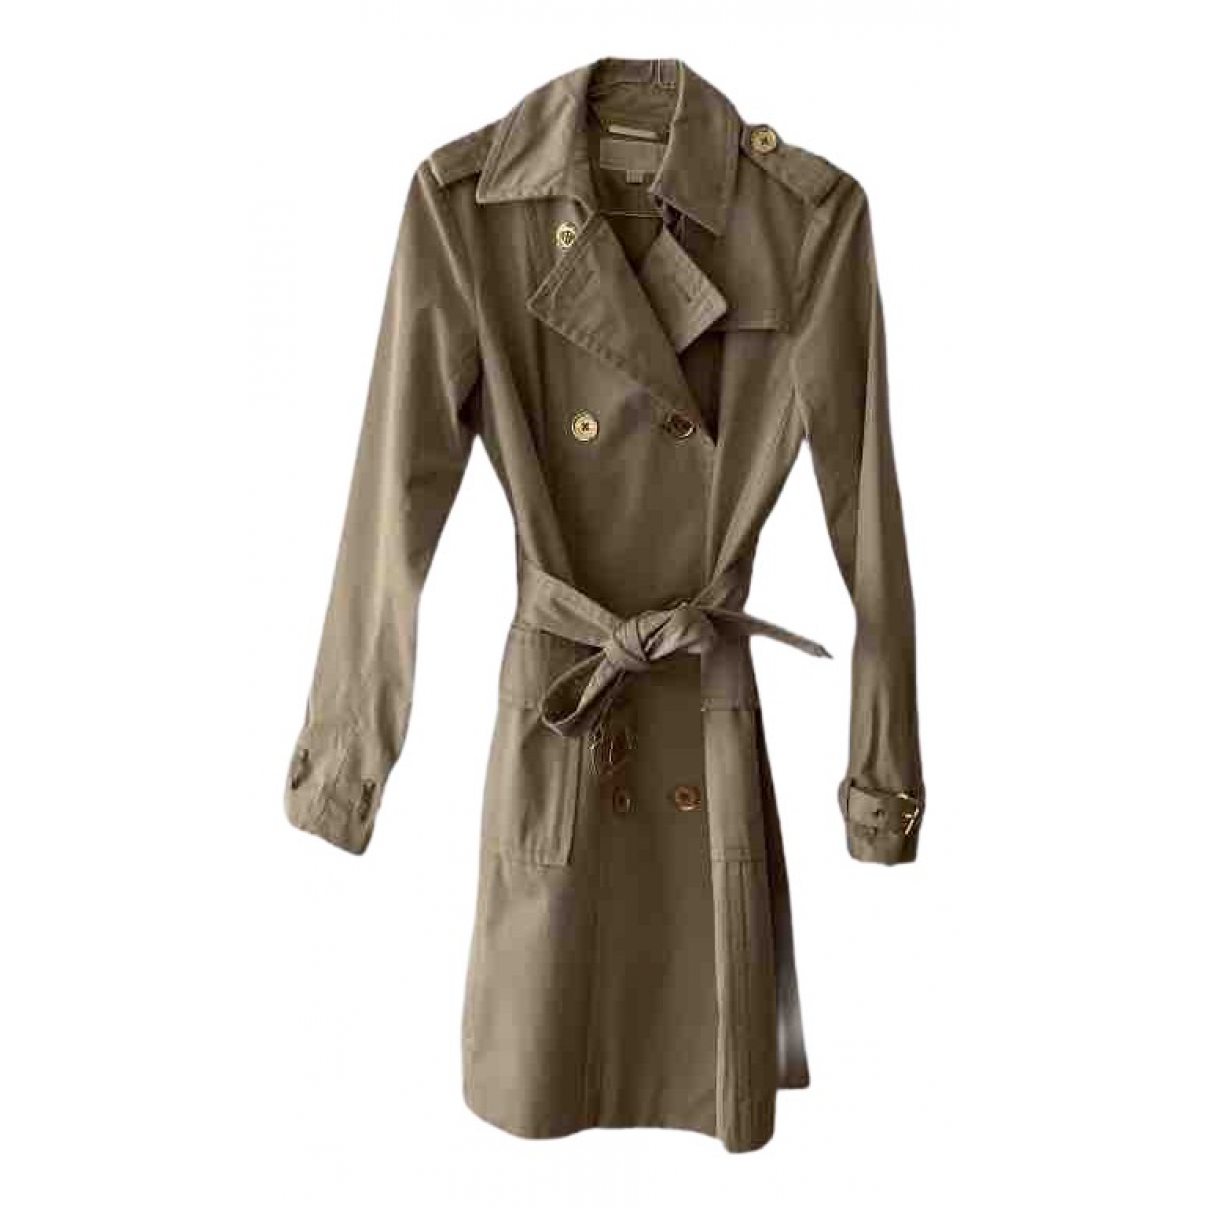 Michael Kors \N Beige Cotton Trench coat for Women XS International